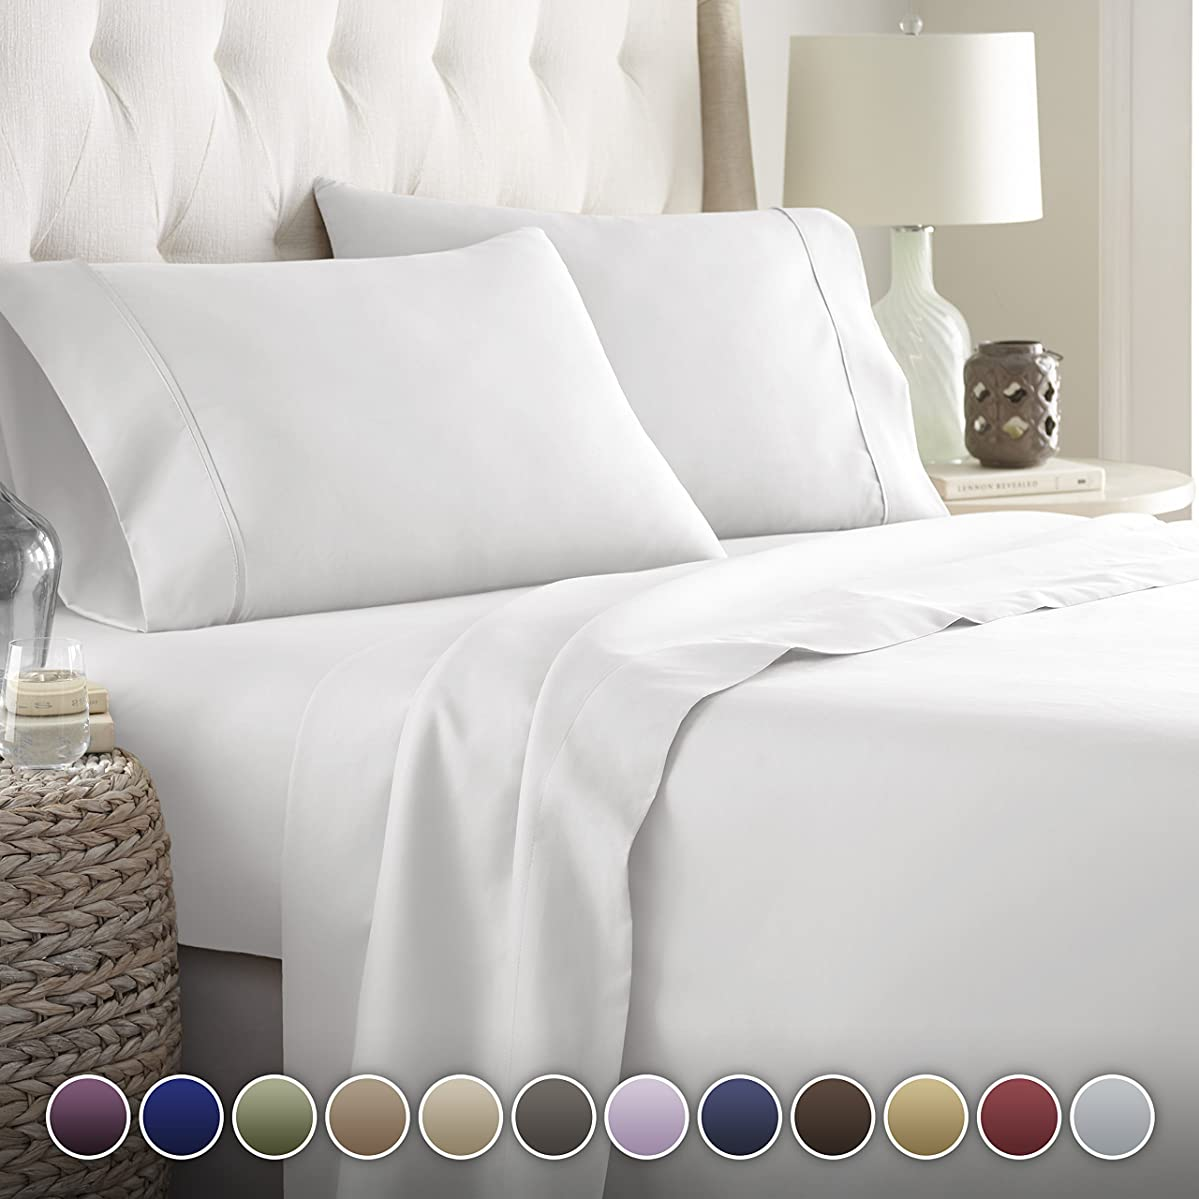 Hotel Luxury Bed Sheets Set-Top Quality Softest Bedding 1800 Series Platinum Collection-Deep Pocket,Wrinkle & Fade Resistant (Twin, White)